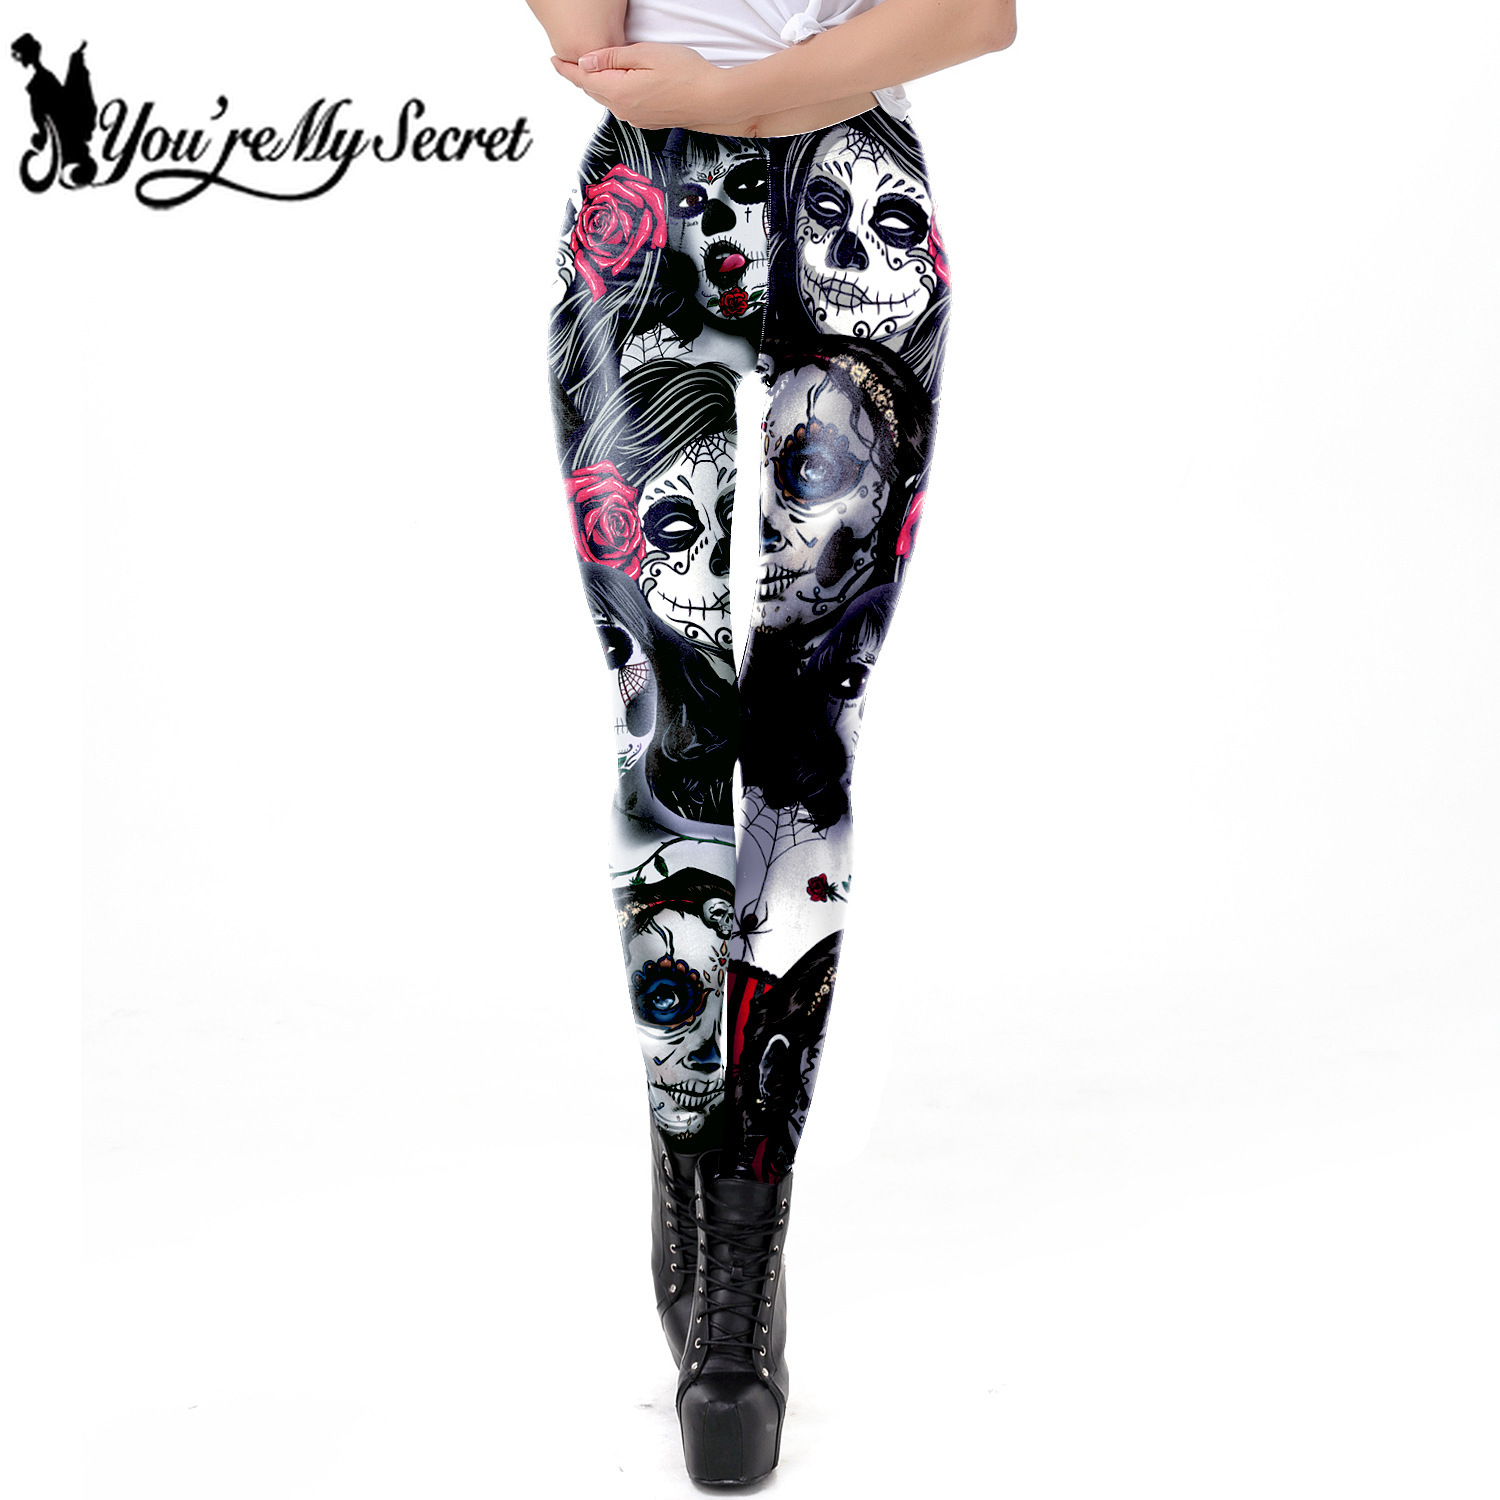 [You're My Secret] 2019 New Arrival The Dead Girl Skull Horrible Scary Fitness Women's Black Printed Legging Female Ankle Pants